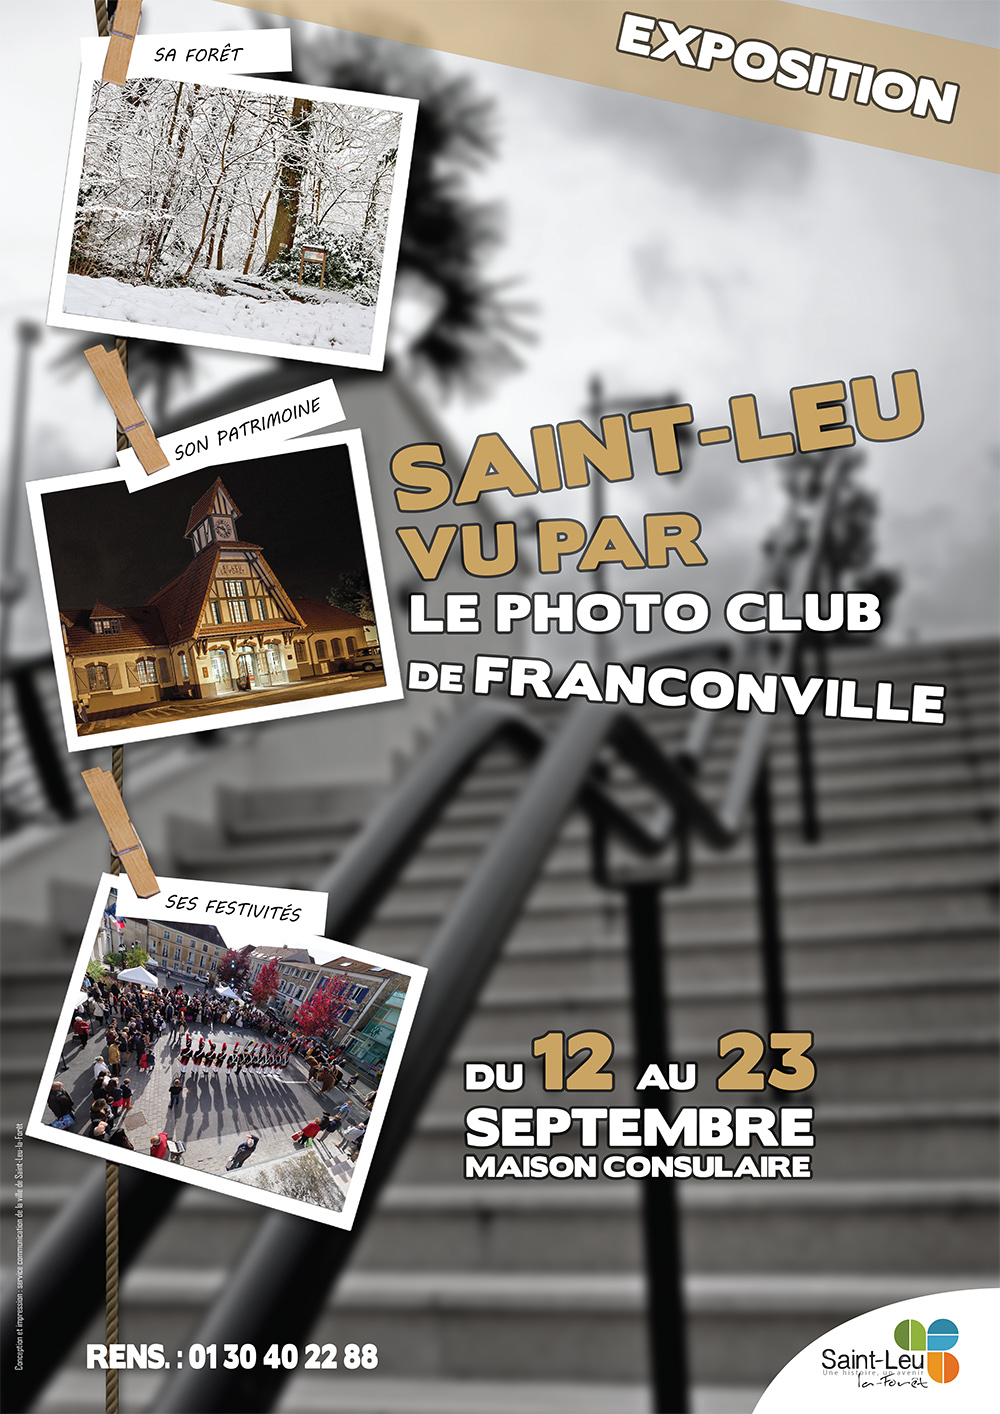 Expo photo Saint-Leu par le Photo Club de Franconville